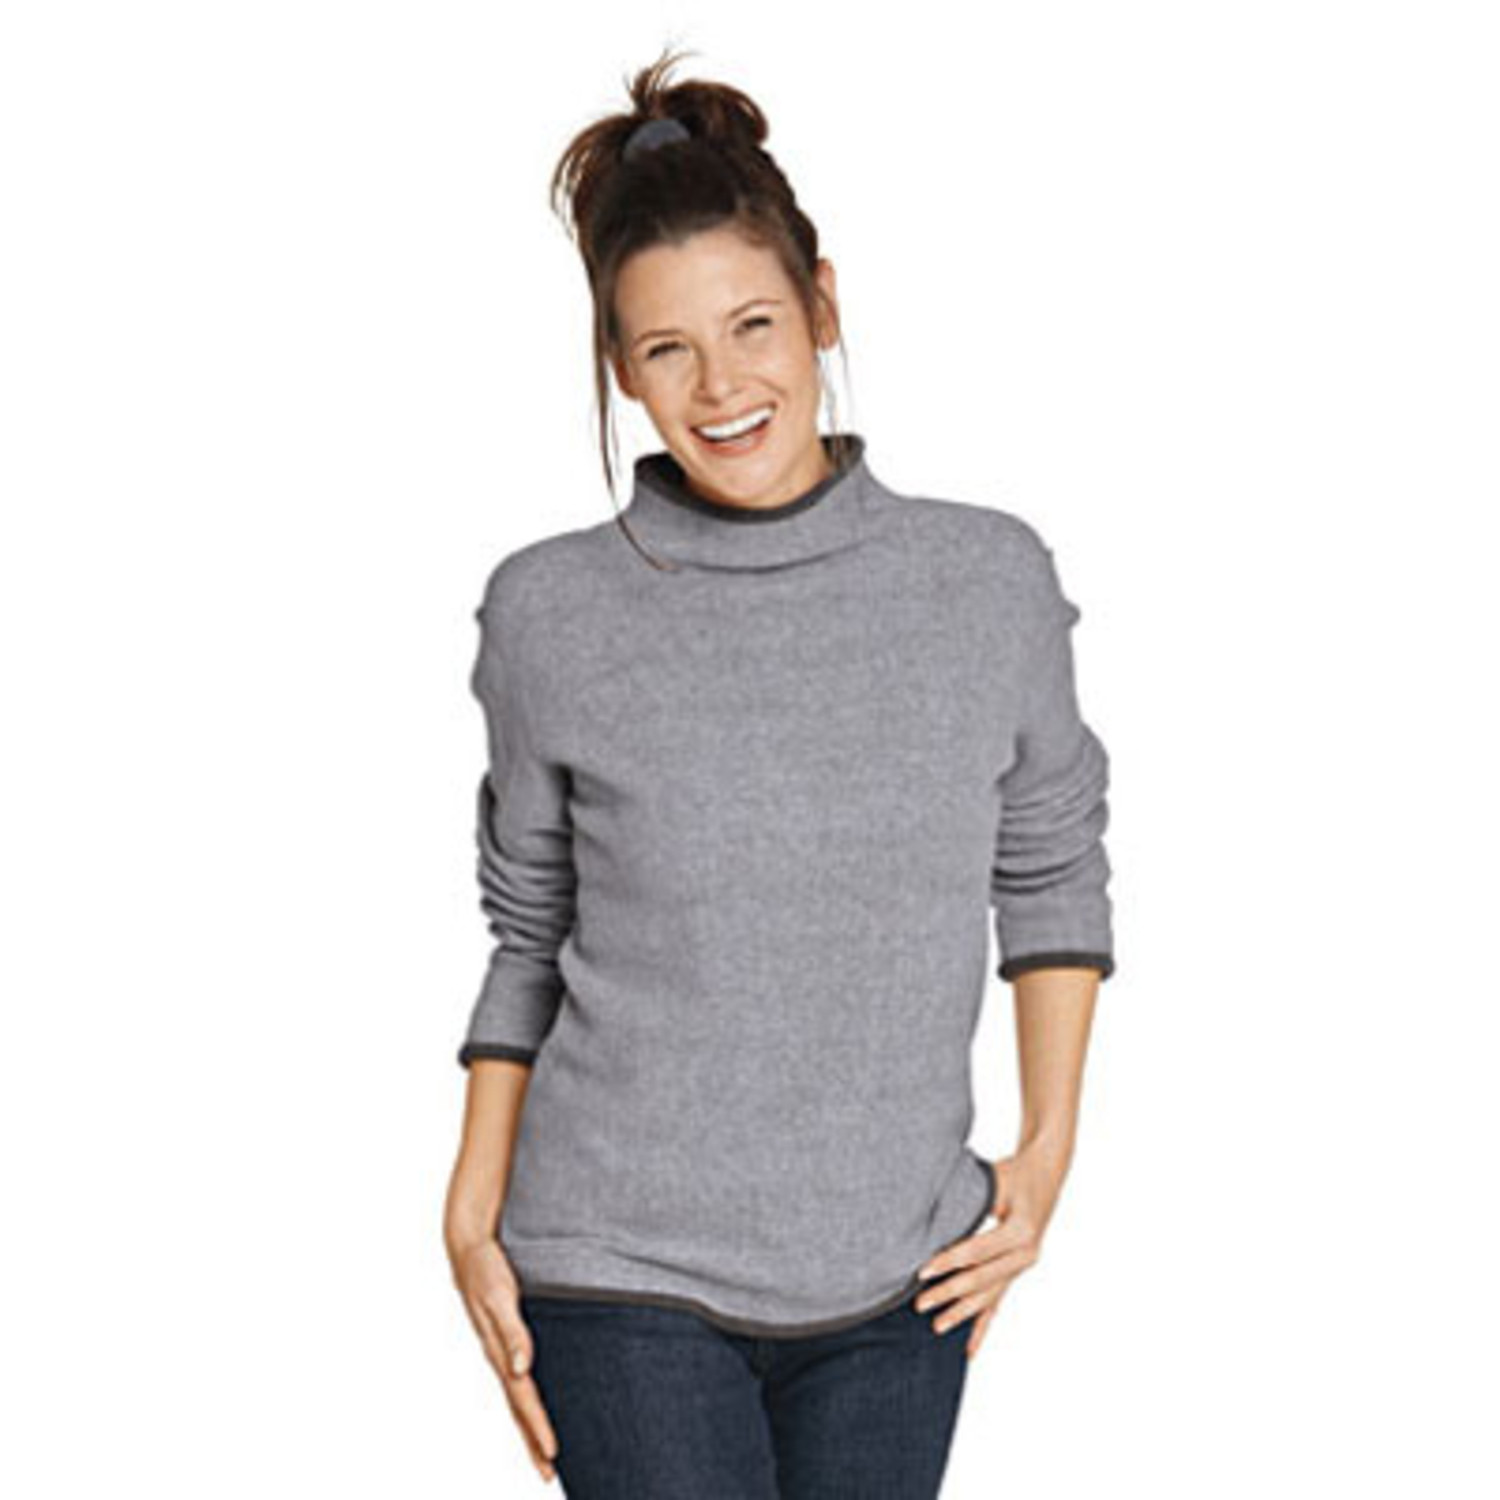 Fleece-Pullover, rostorange/anthrazit